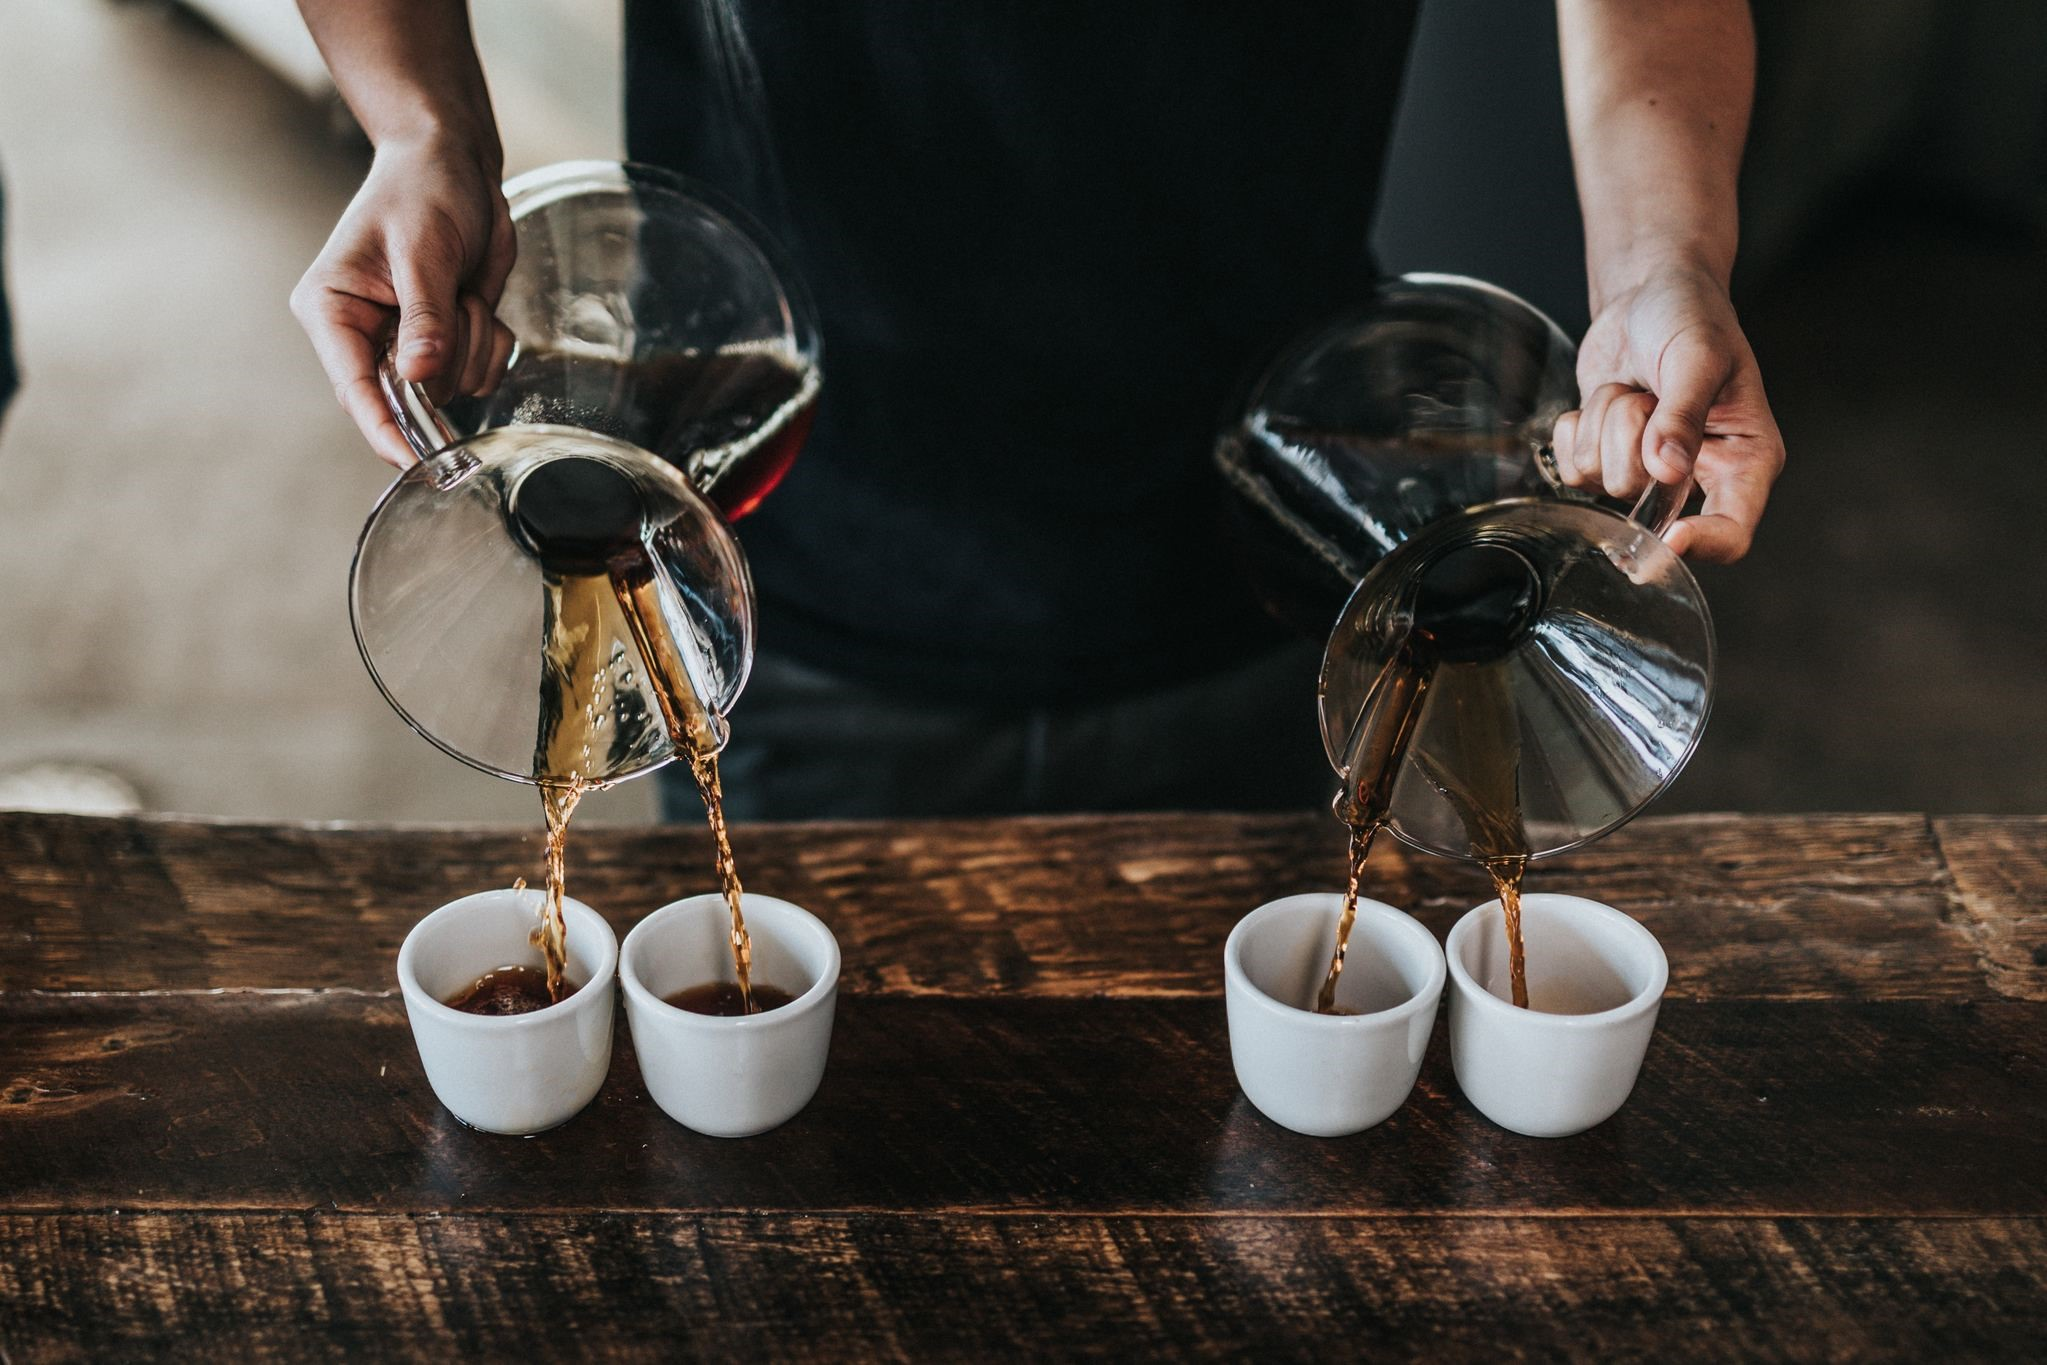 a man pours two-cup specialty coffee into four transparent coffee cups